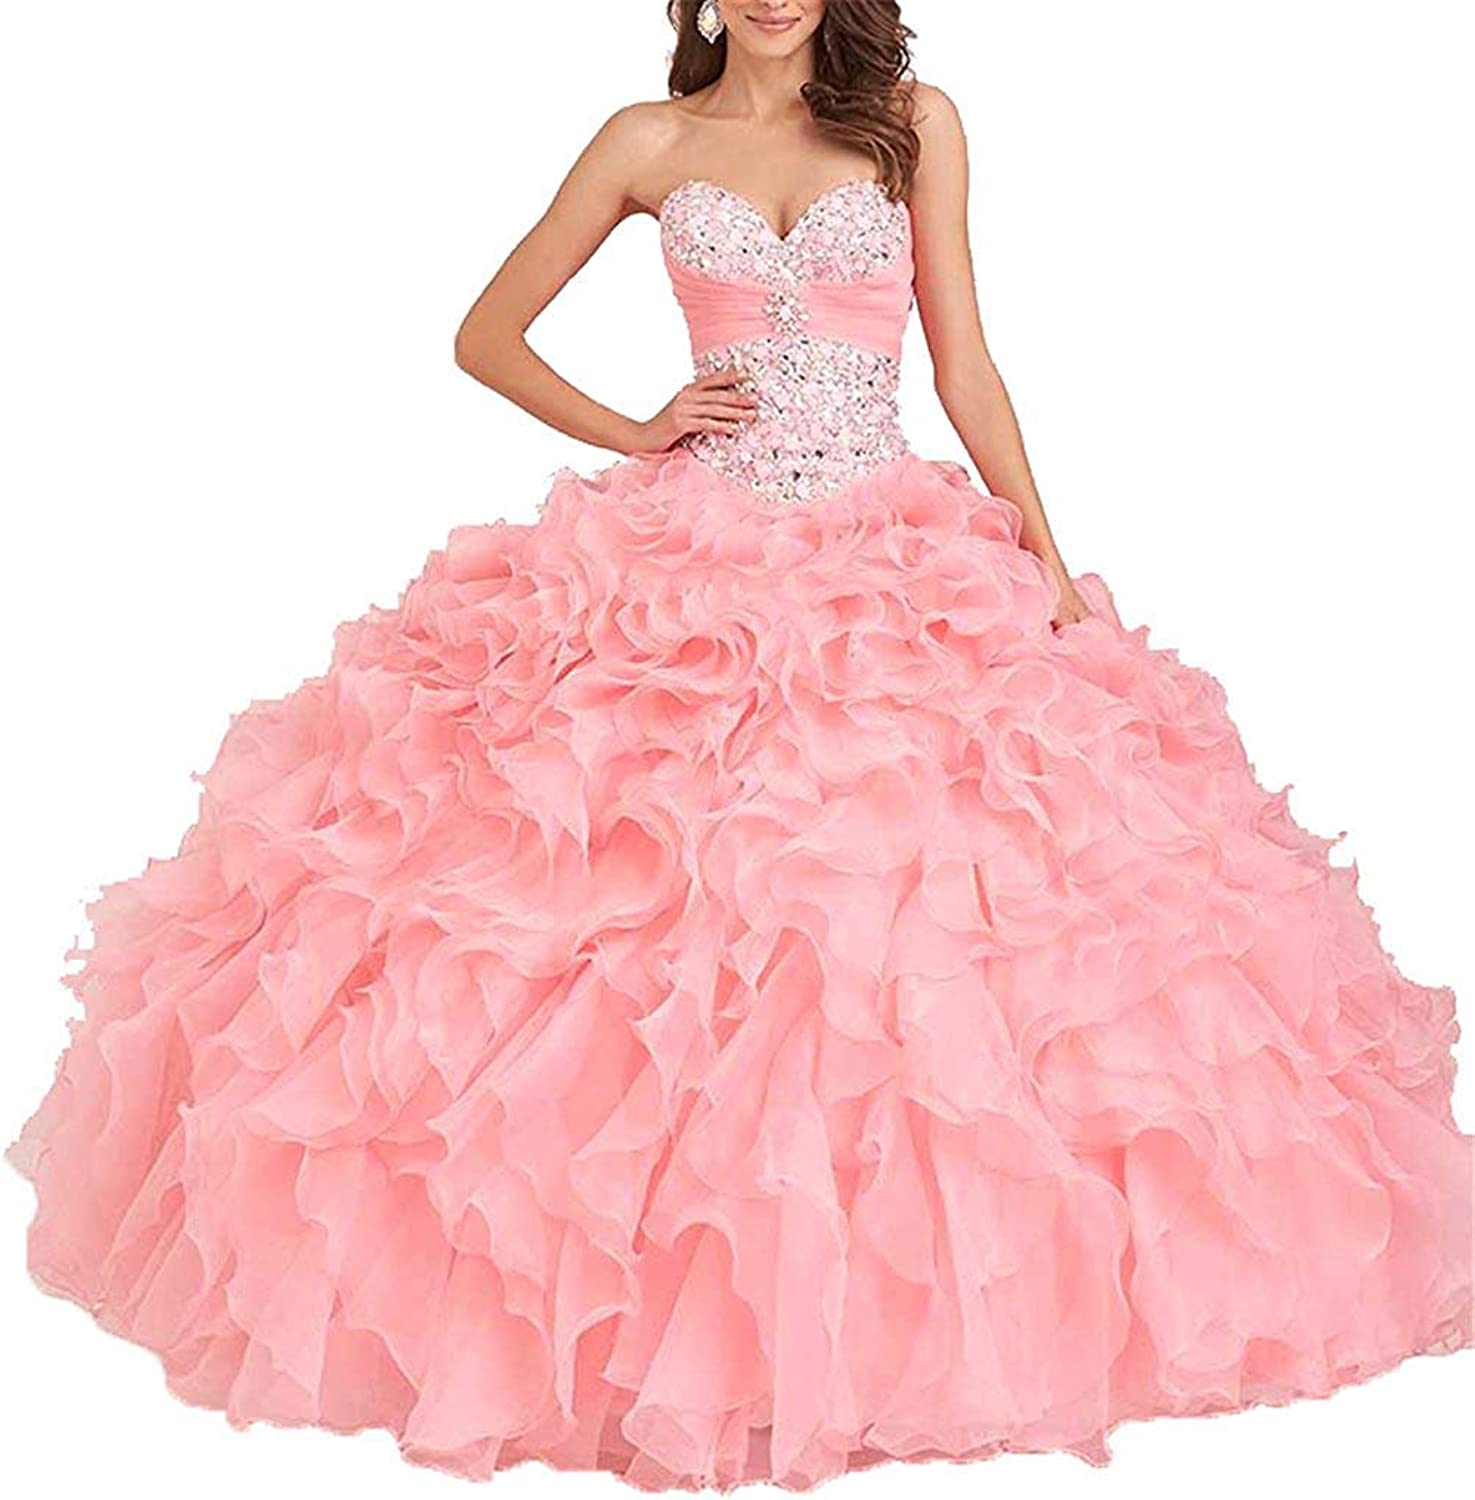 ANFF Teens Floor Length Strapless Beaded Quinceanera Dresses Women Party Ball Gowns